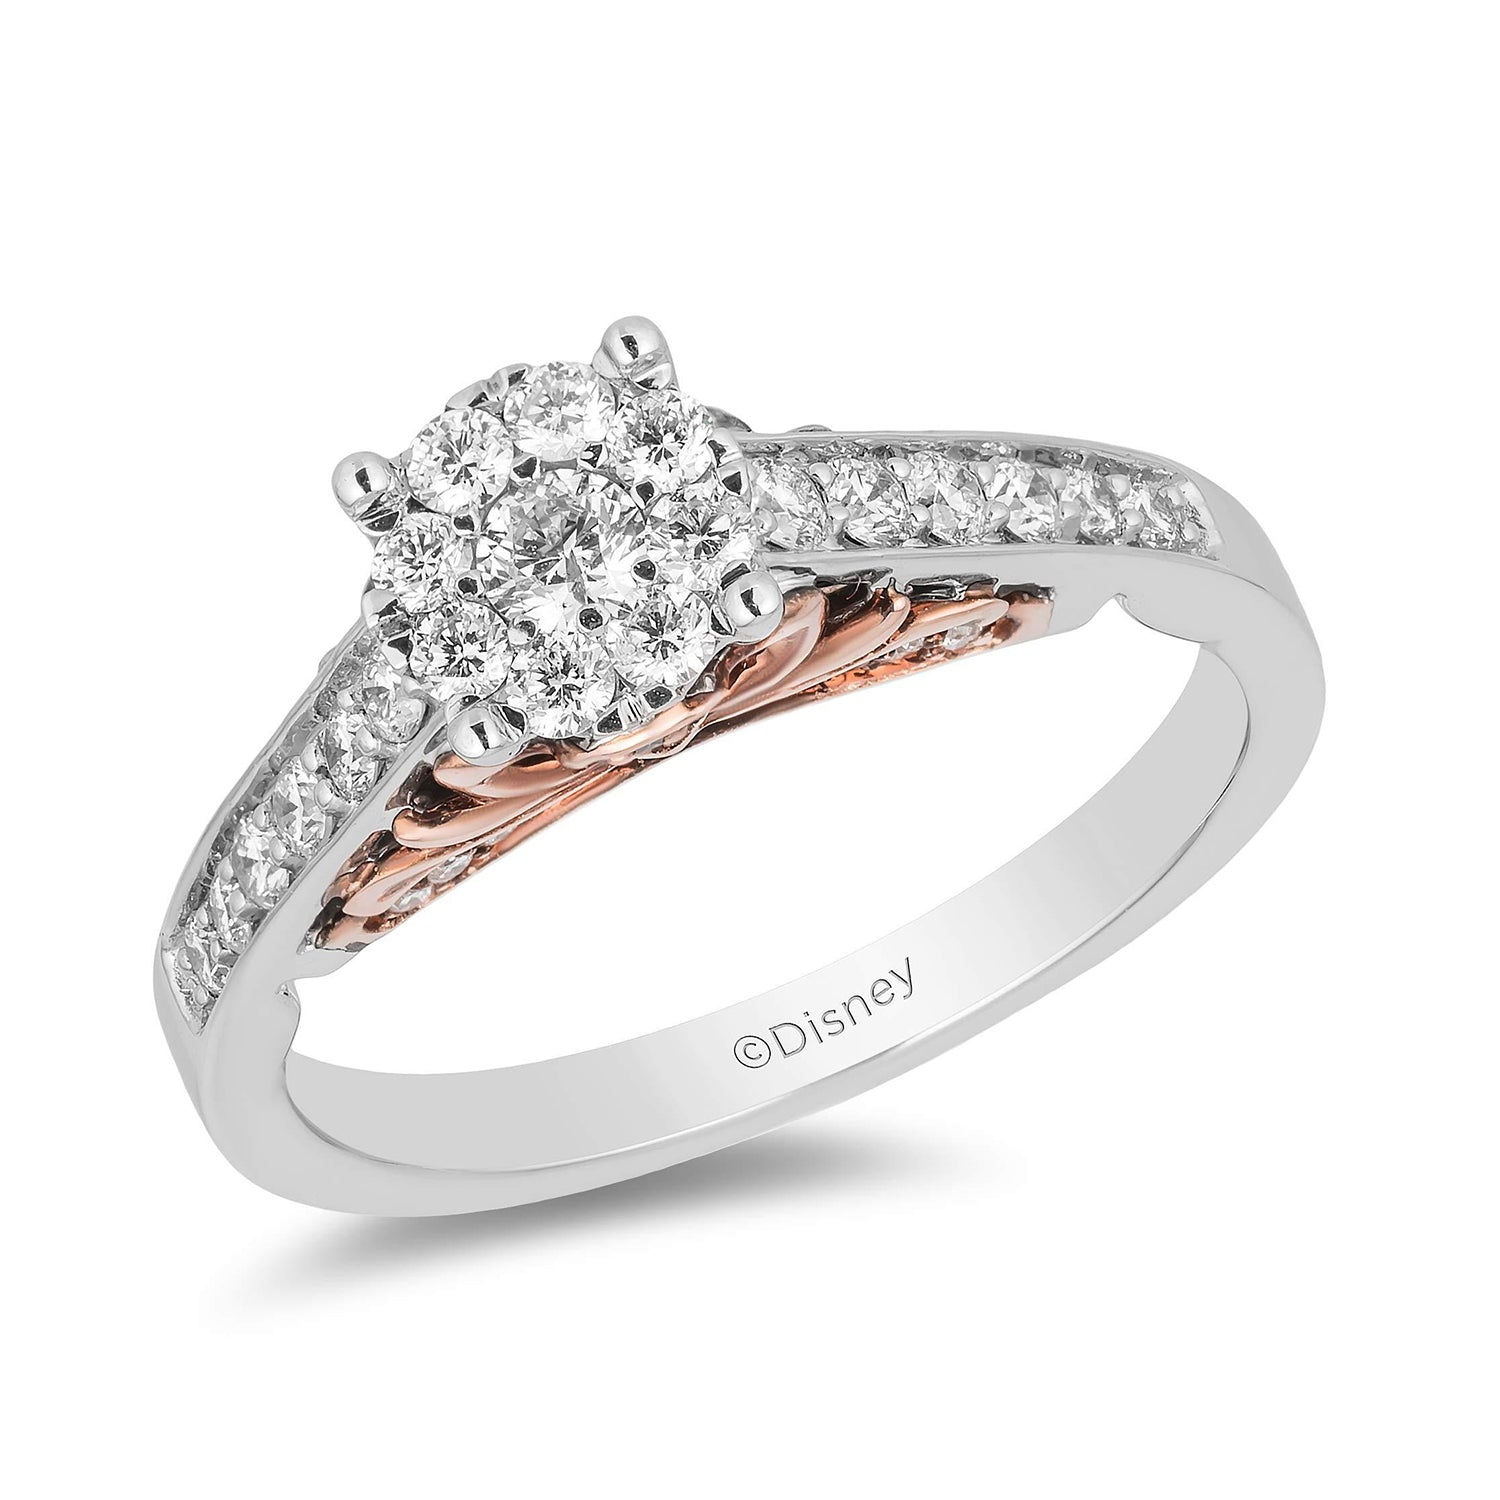 enchanted_disney-majestic-princess-white_diamond_ring-rose_and_white_gold_5/8CTTW_1